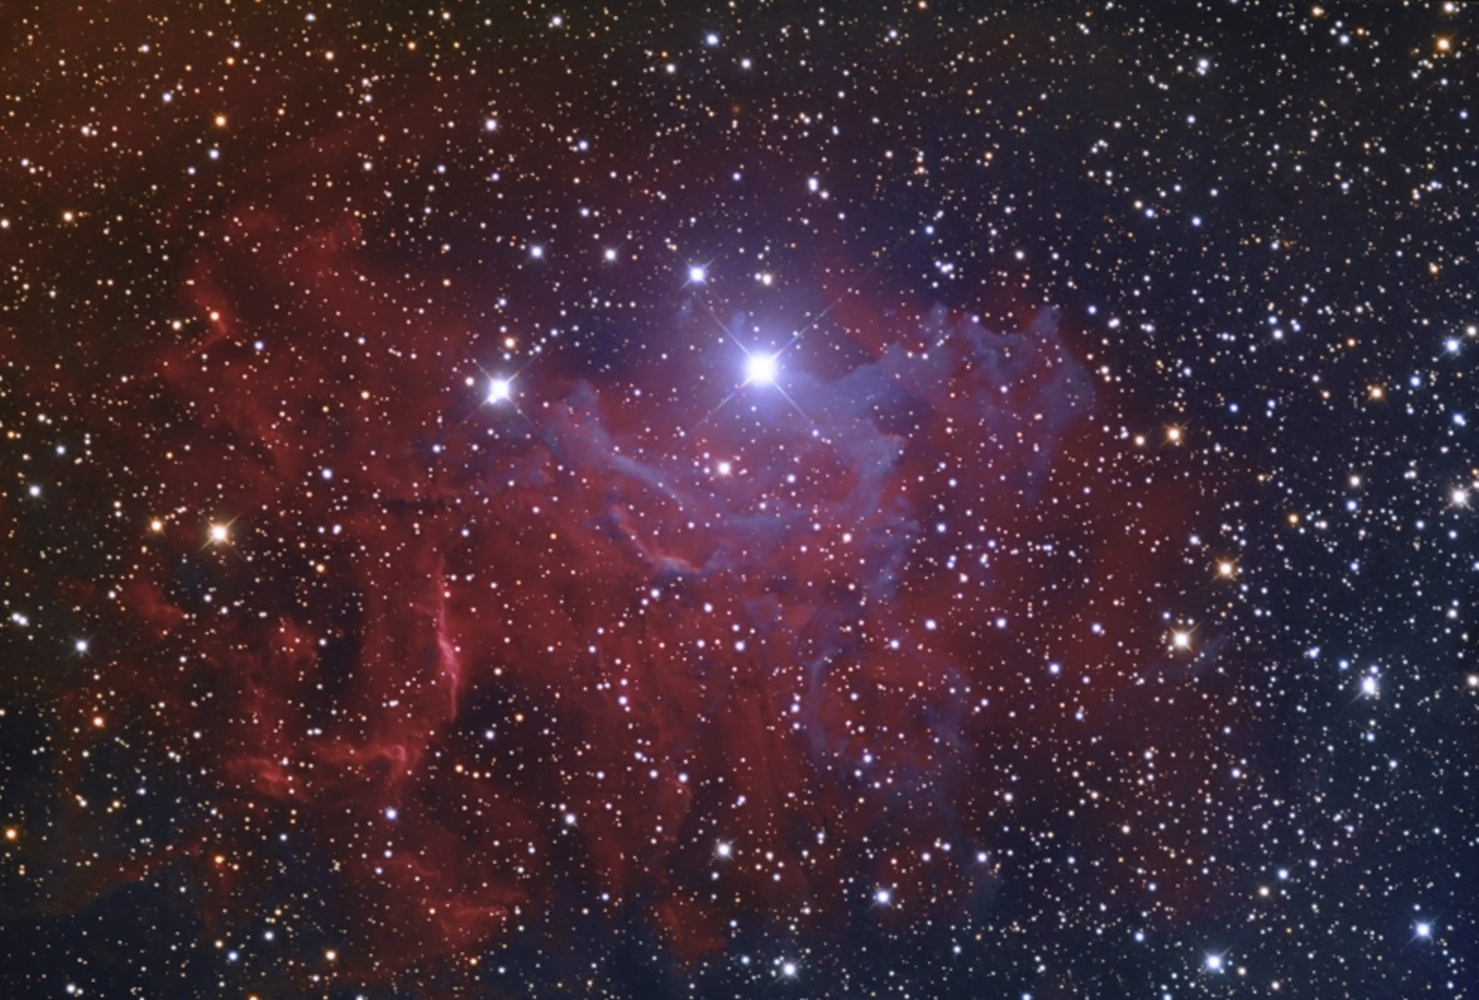 IC 405 from BMV Observatories